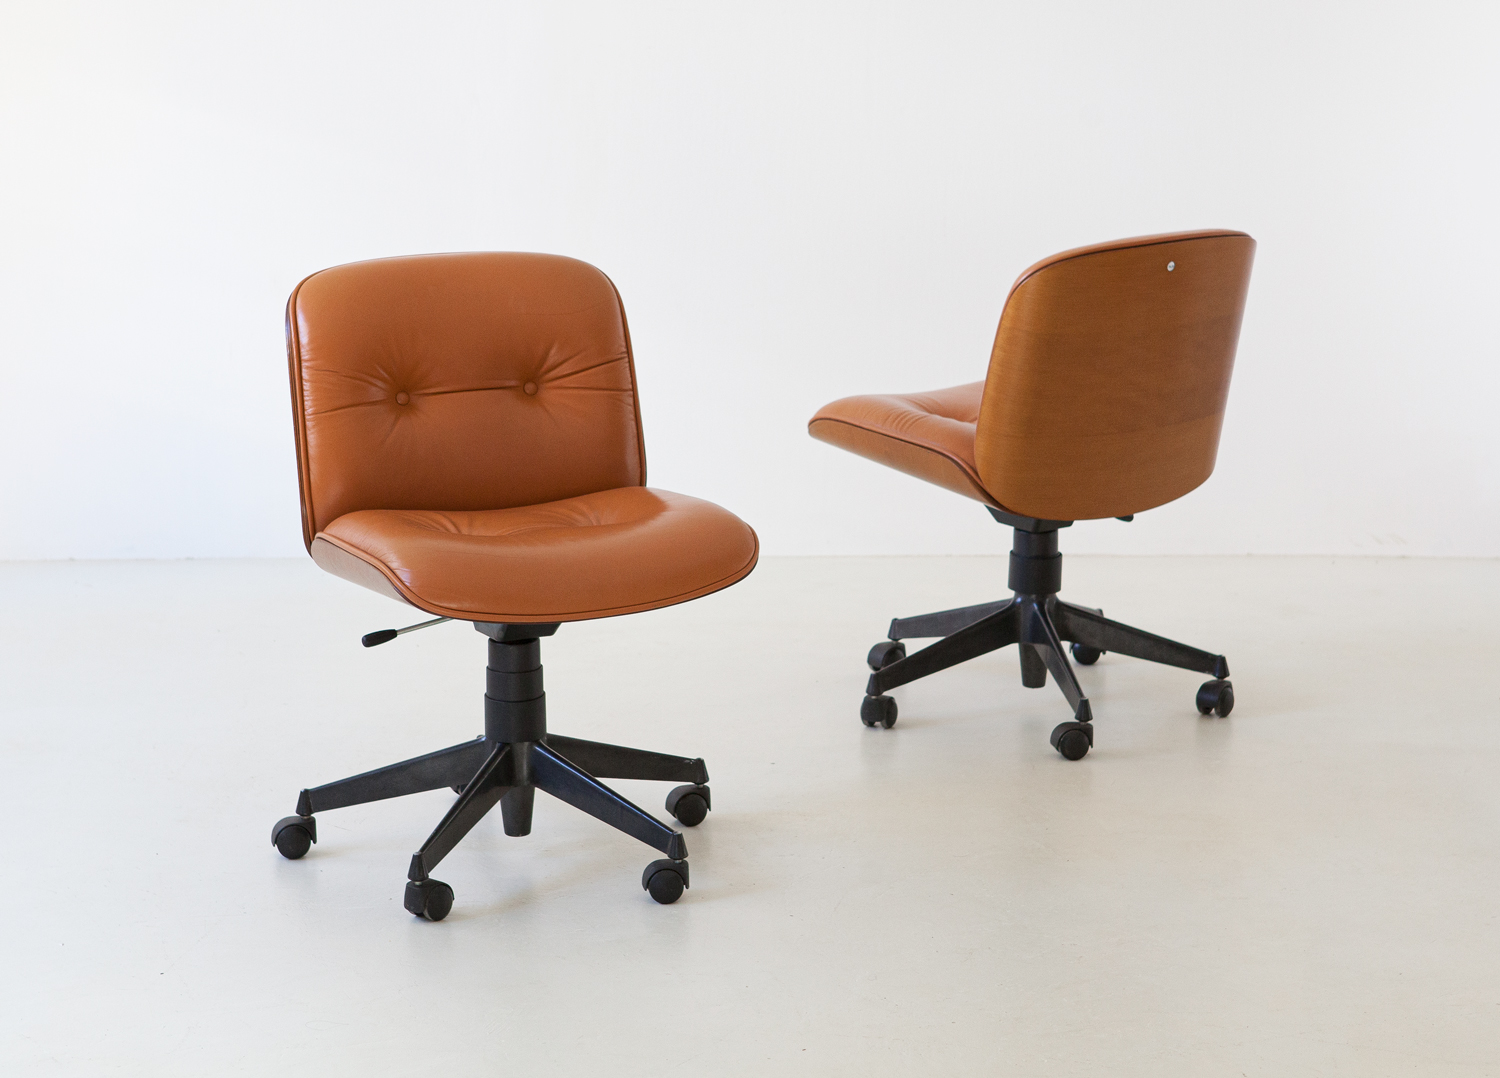 1960s-swivel-desk-chairs-by-ico-parisi-for-mim-2-SE317